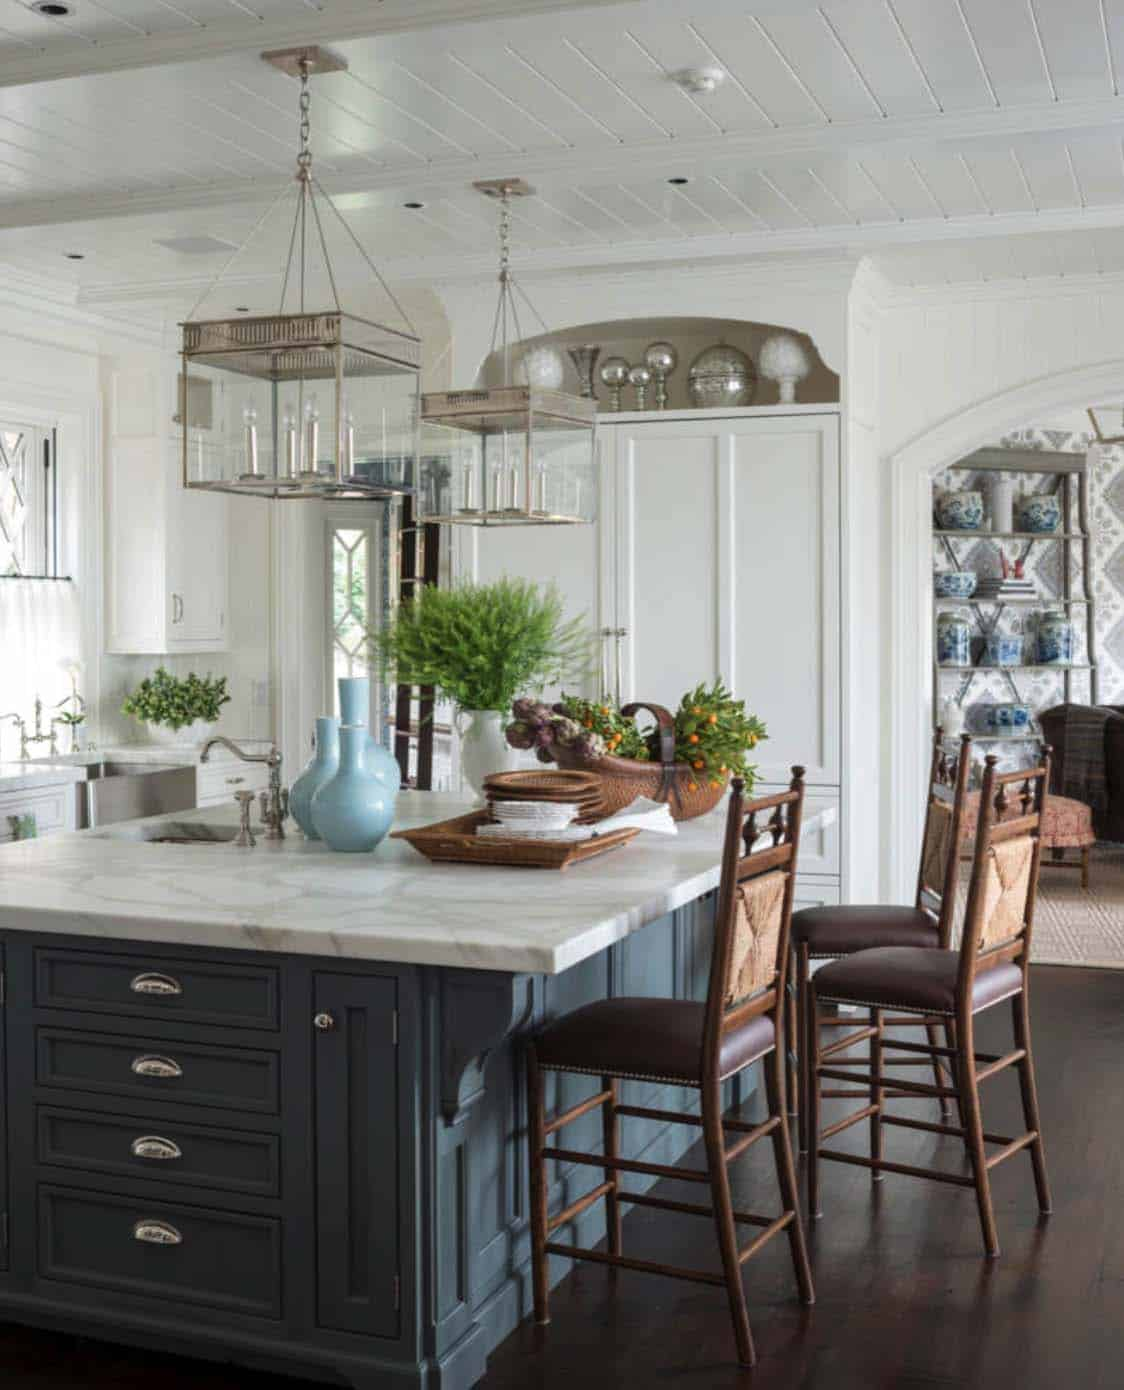 Dream Kitchen Sink: 25+ Dream Kitchen Islands That Are Utterly Drool Worthy